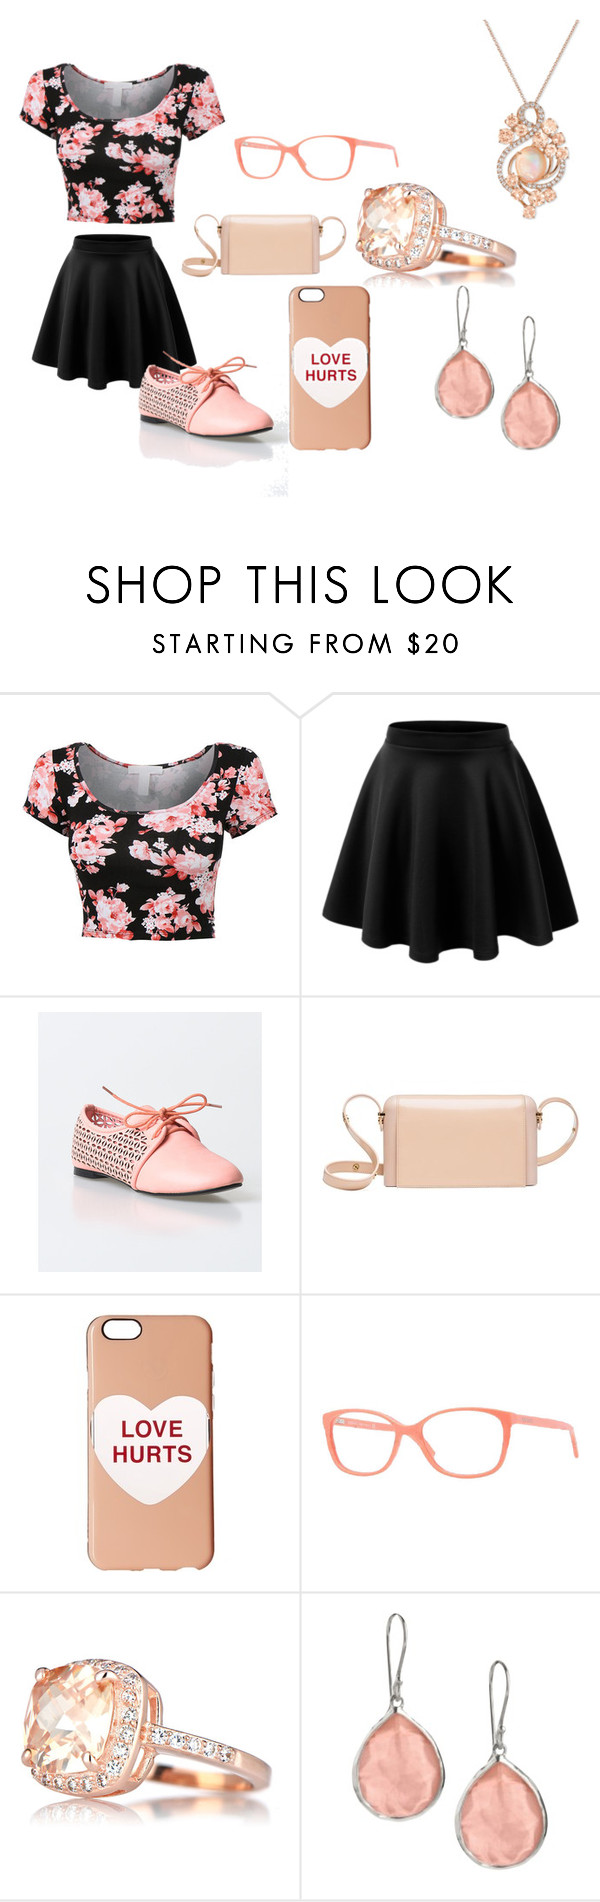 """""""All peach Every day"""" by adorimejohnson ❤ liked on Polyvore featuring beauty, Marni, Marc Jacobs, Versace, Ippolita and LE VIAN"""